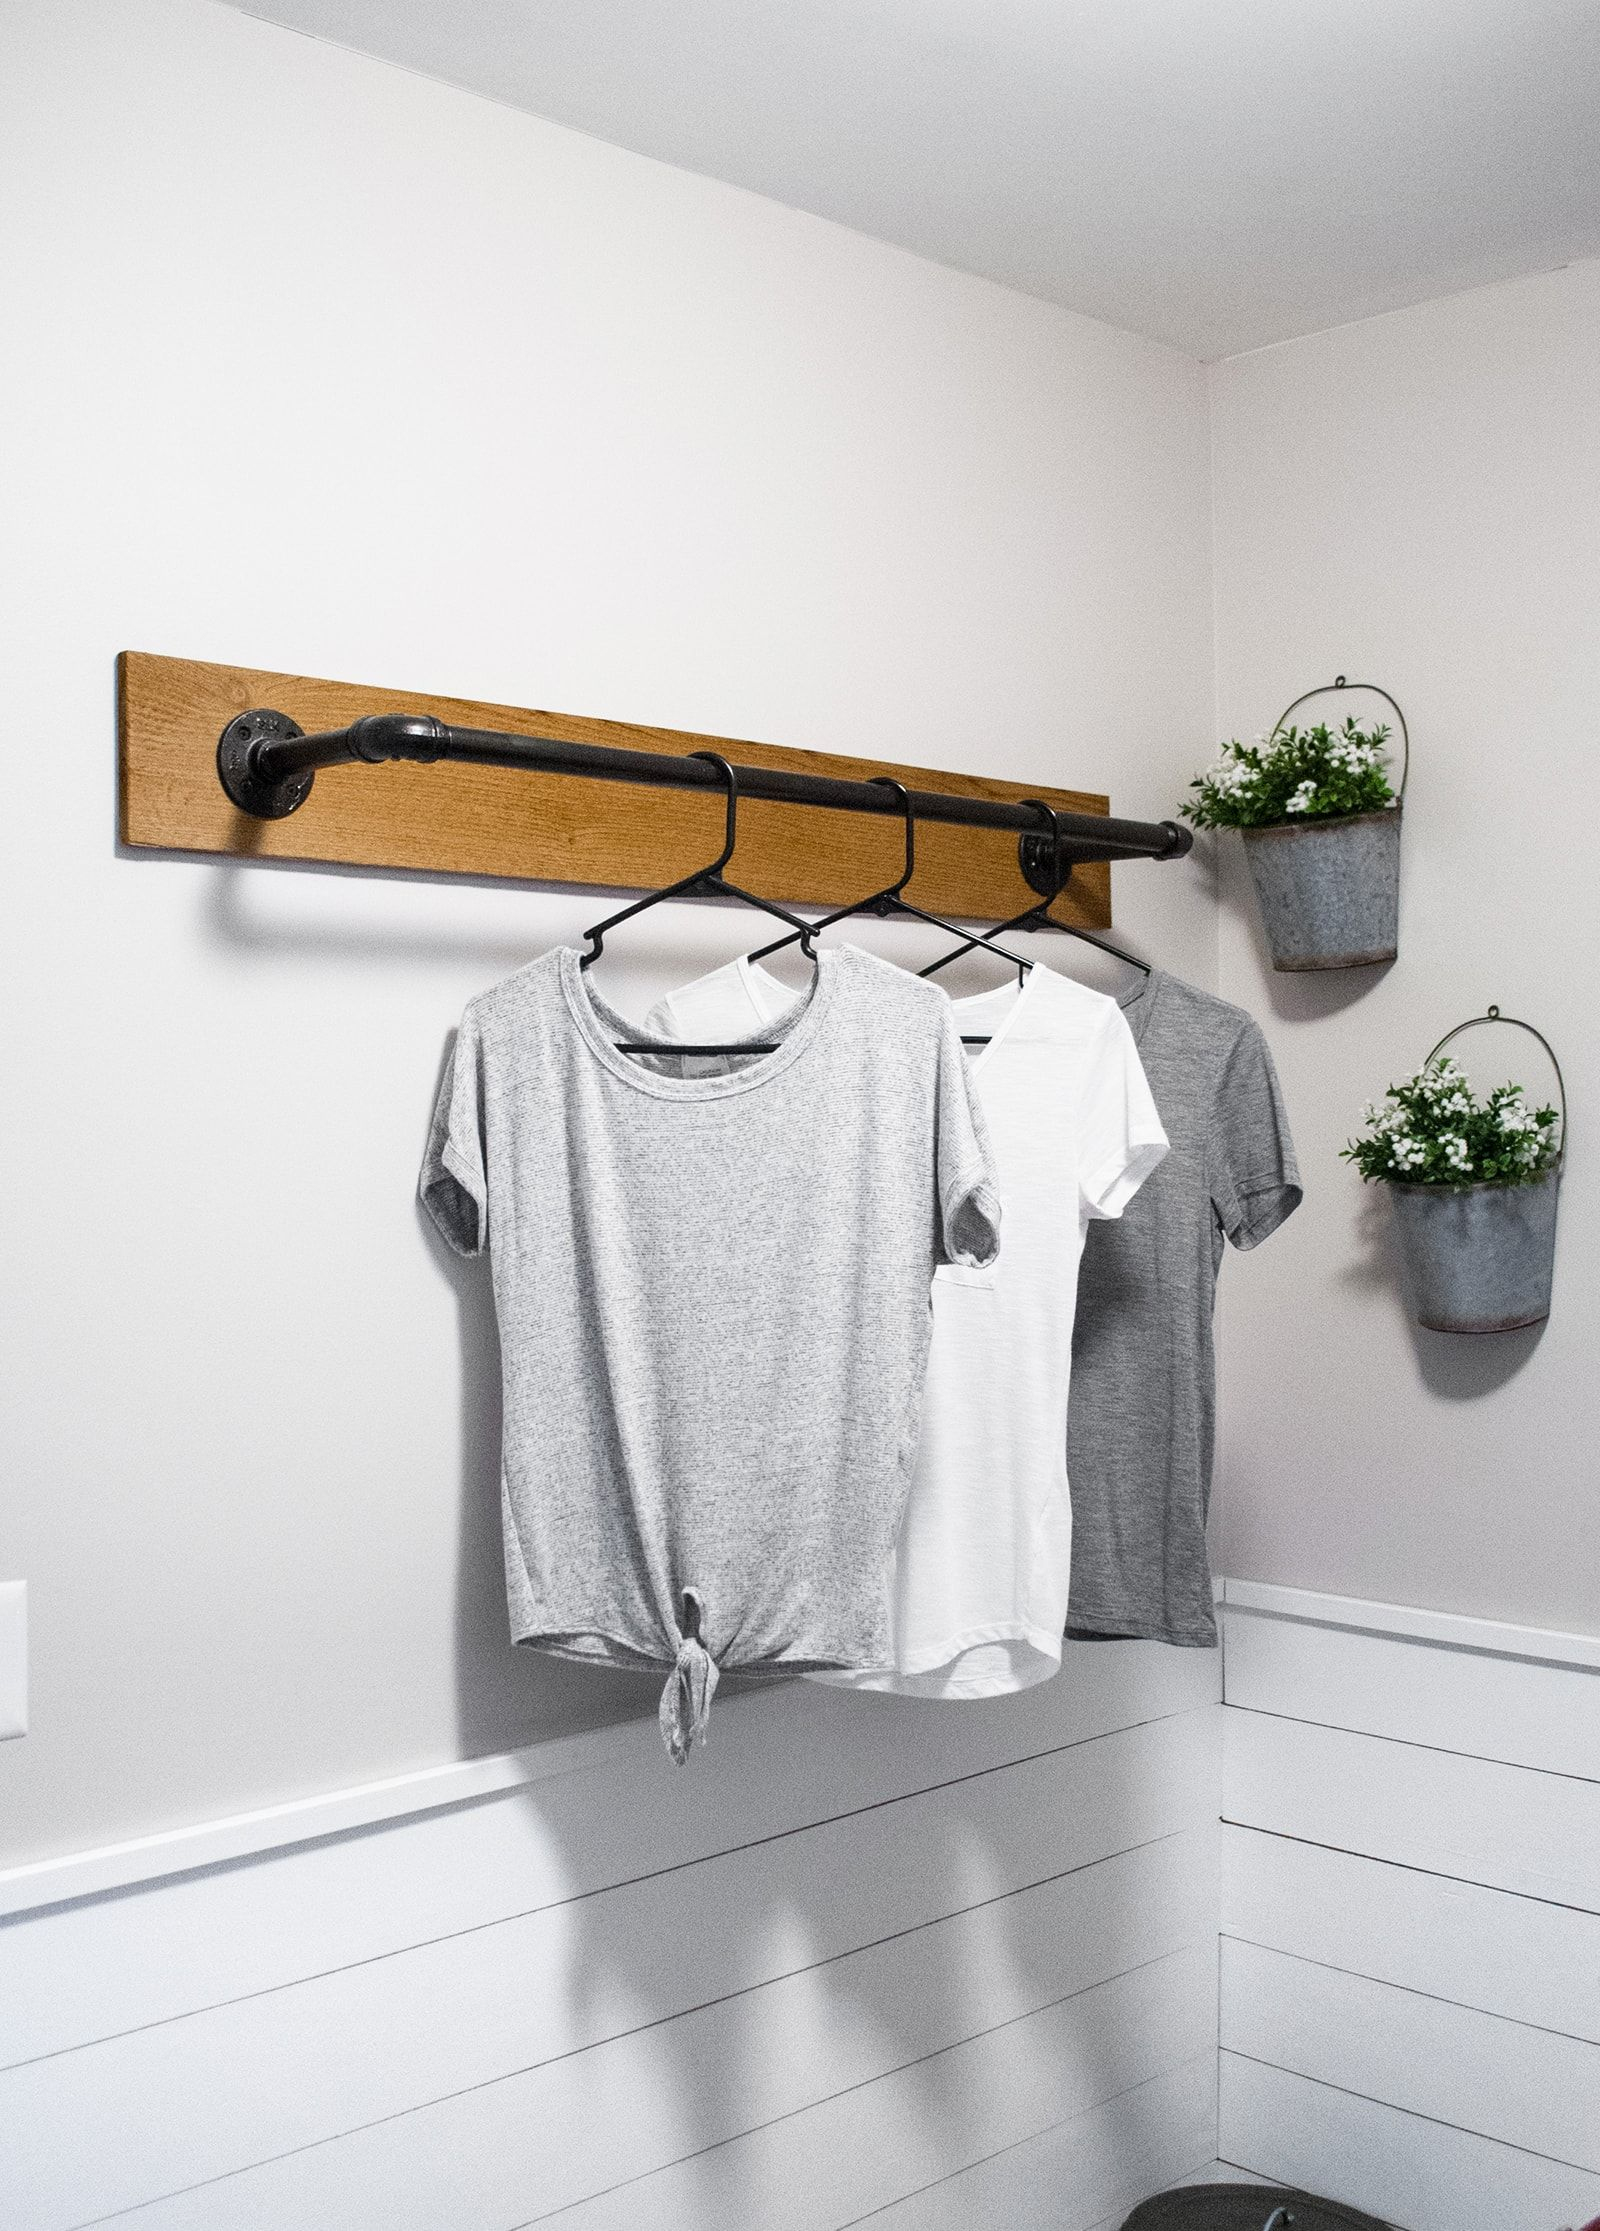 diy wall mounted clothing rack wall mounted clothing on walls coveralls website id=99604